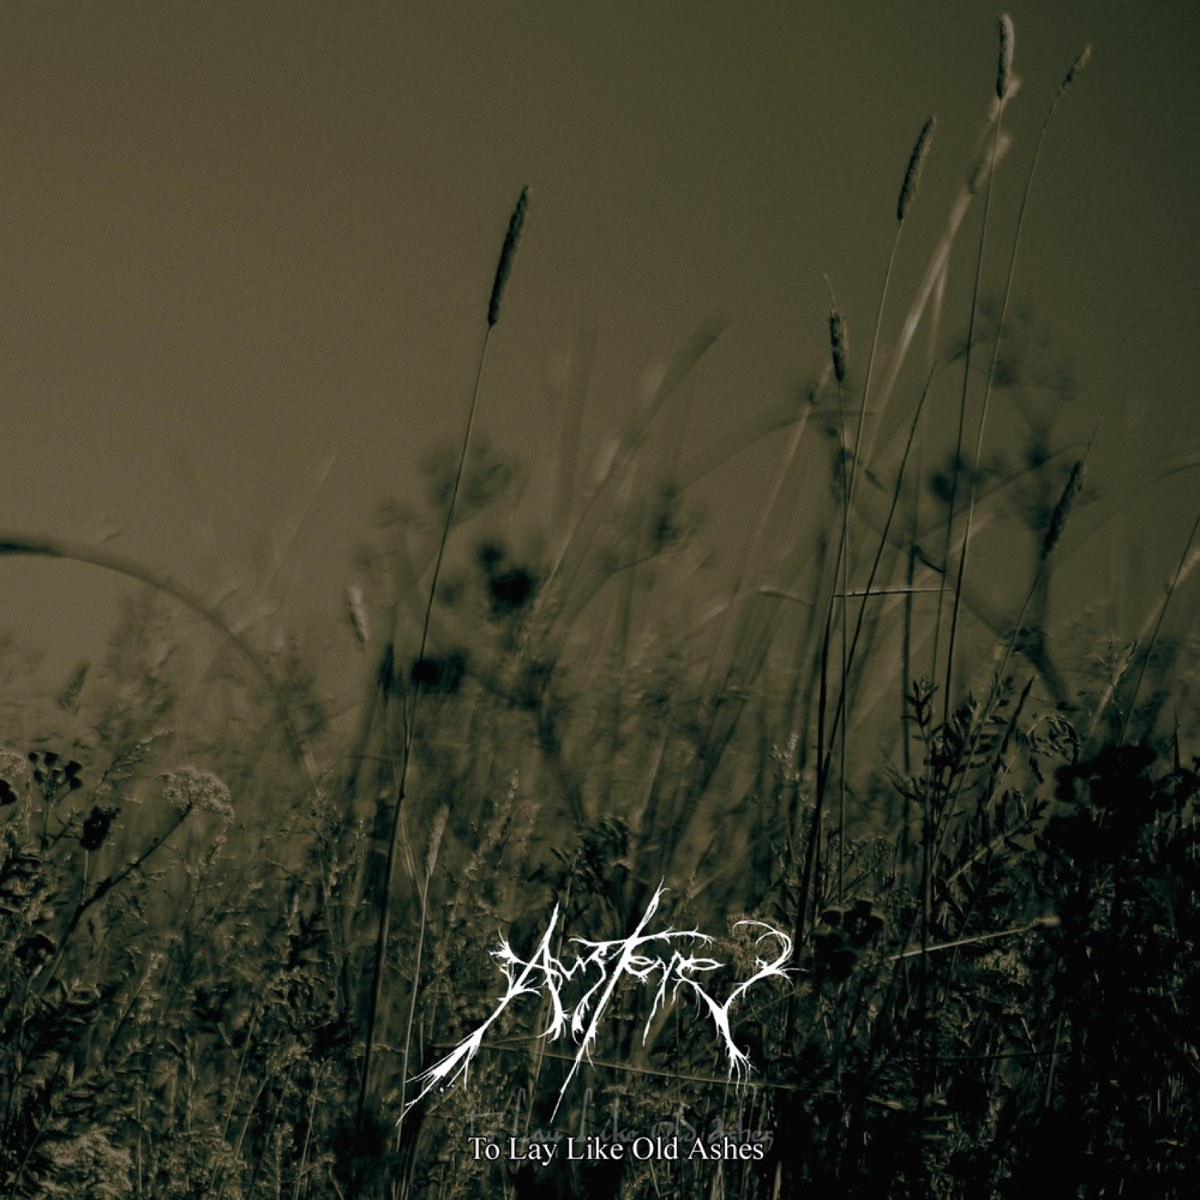 Review for Austere - To Lay Like Old Ashes